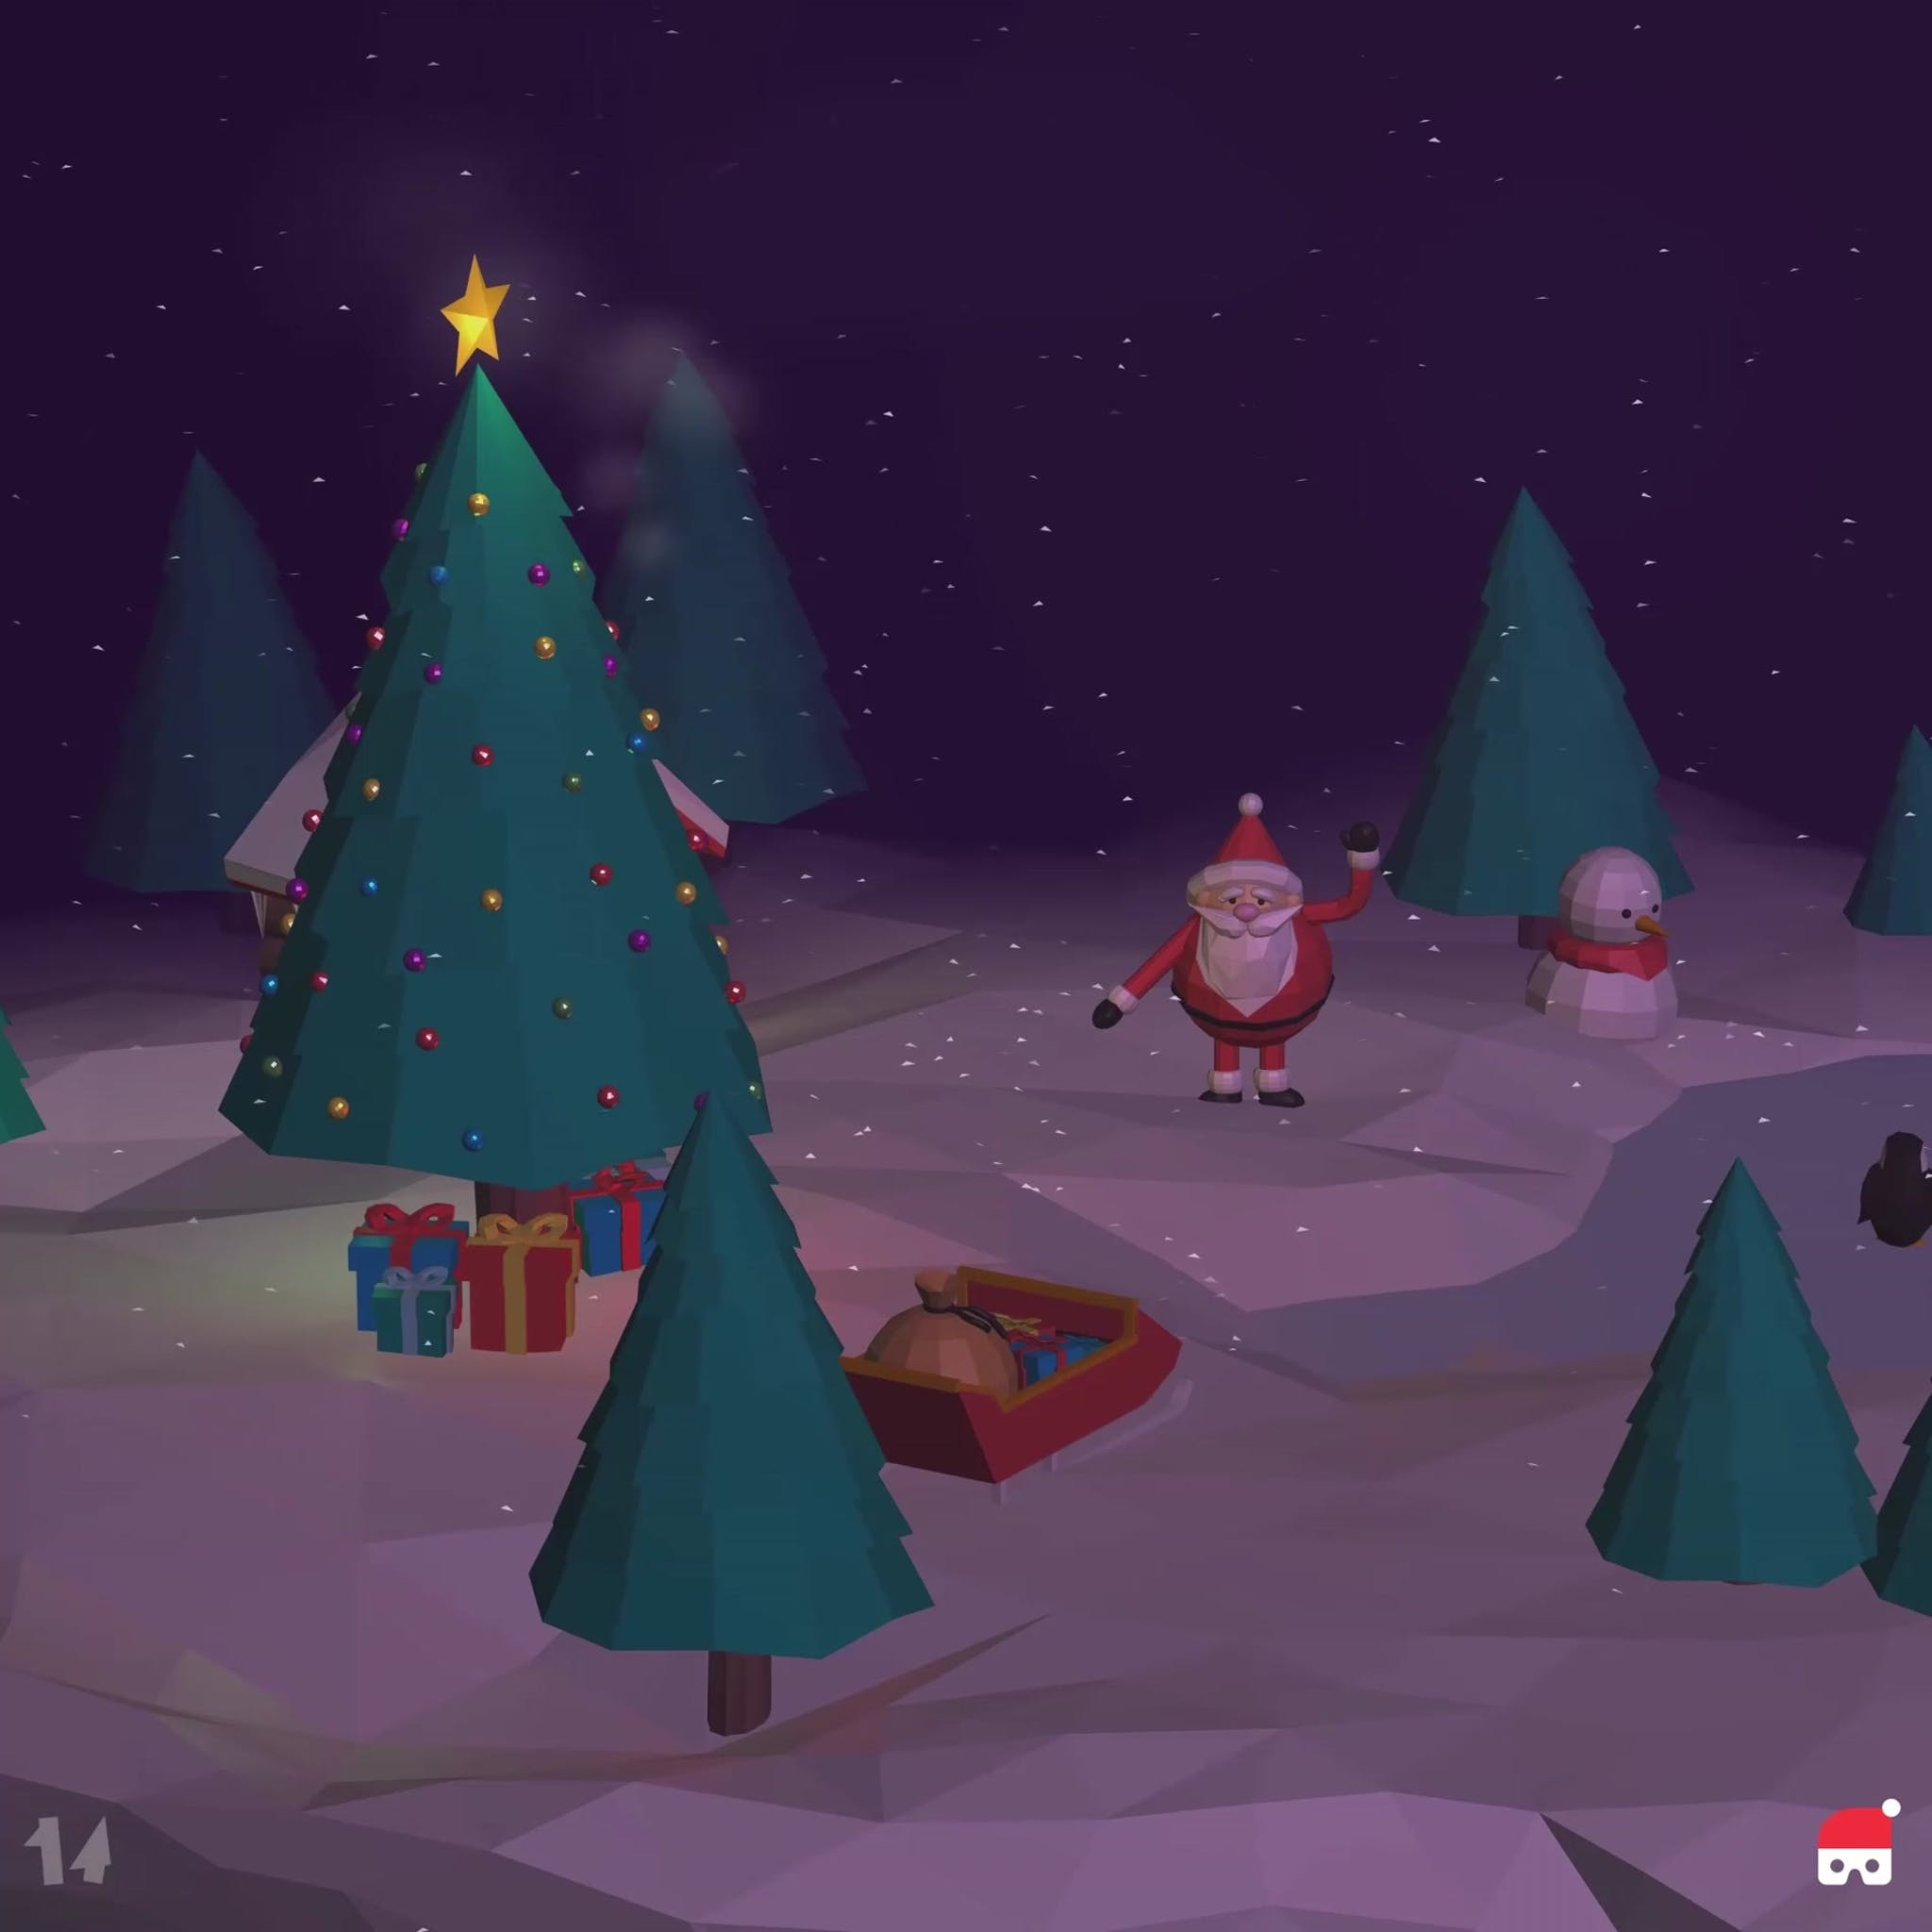 VR experience of Santa Claus inside a snow globe